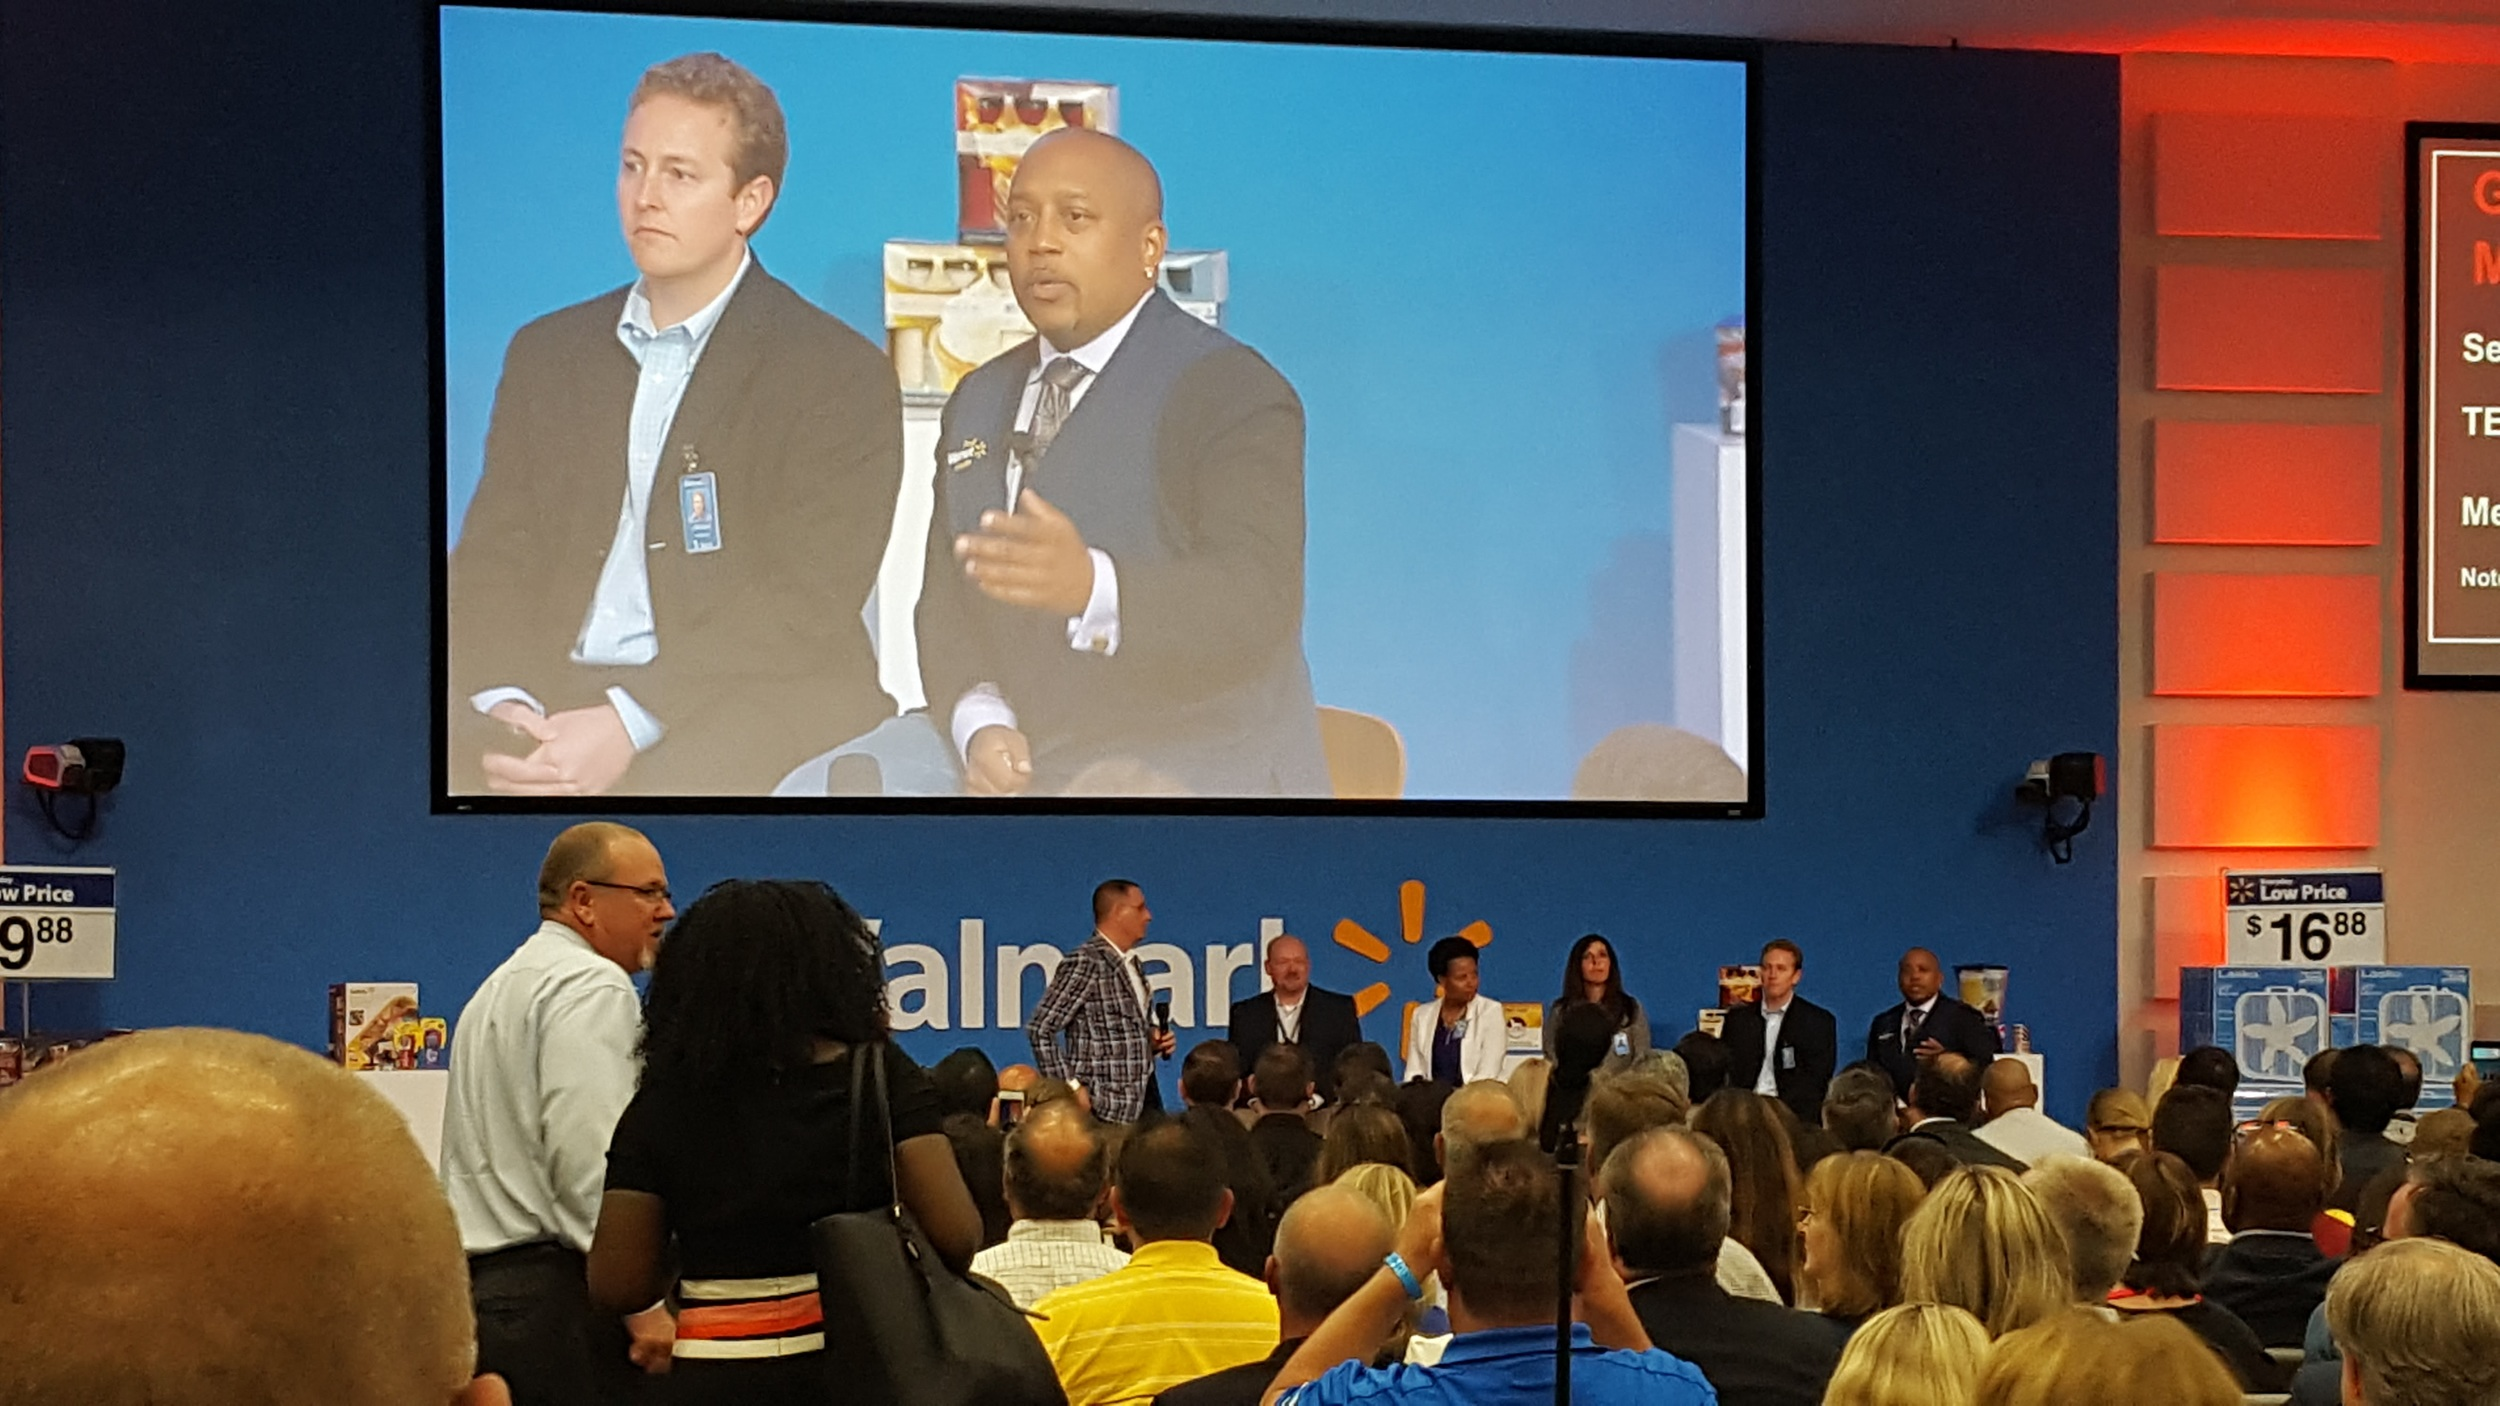 Daymond John was a guest panelist in a Shark Tank-like competition. That was fun and inspiring to watch!